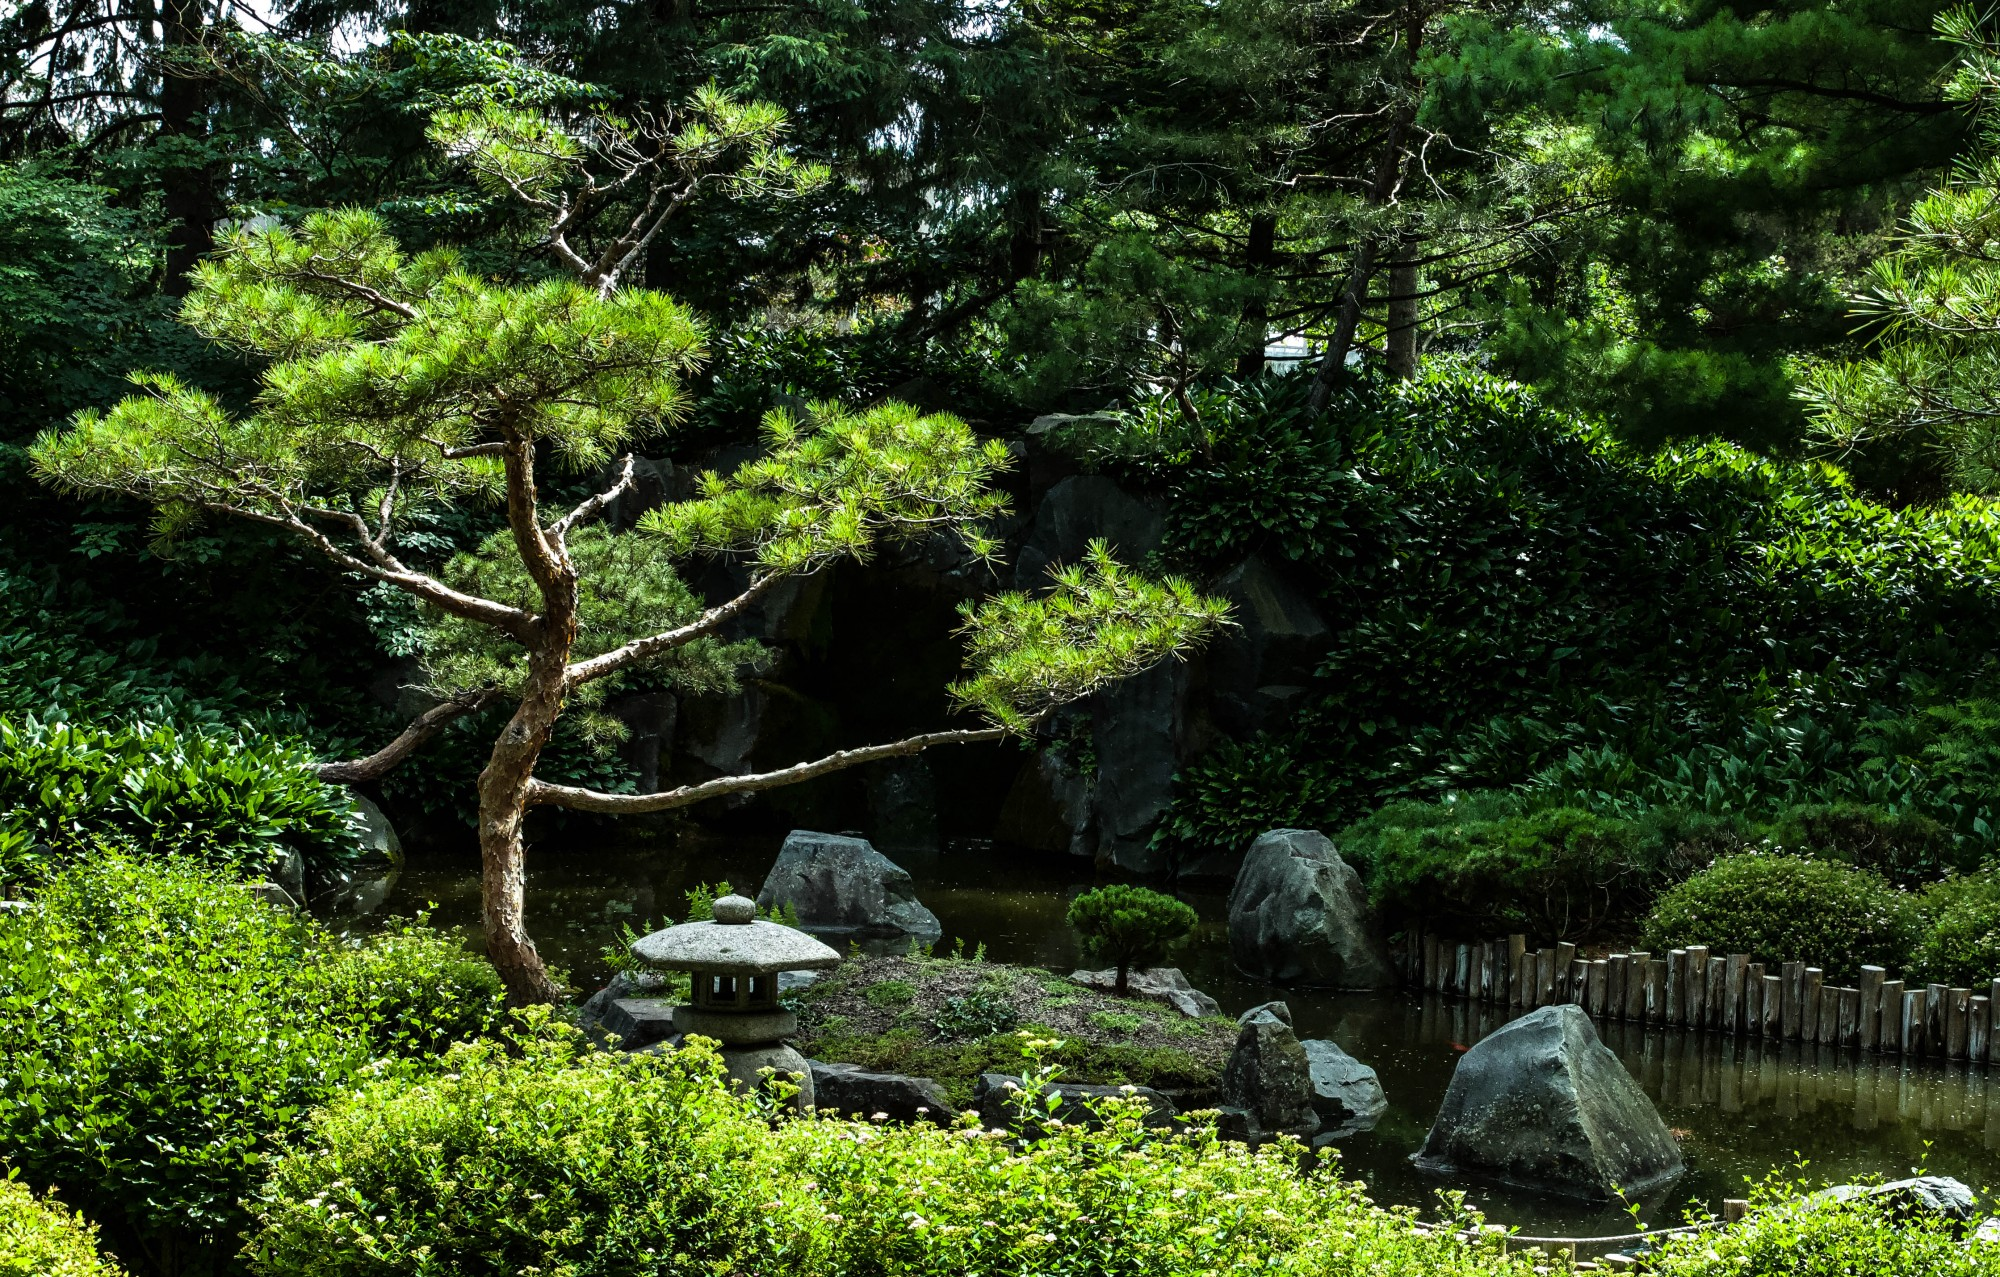 The Japanese Garden is tucked away to the West of the Oswald Visitor Center at the Minnesota Landscape Arboretum in Chaska on Monday, July 13.